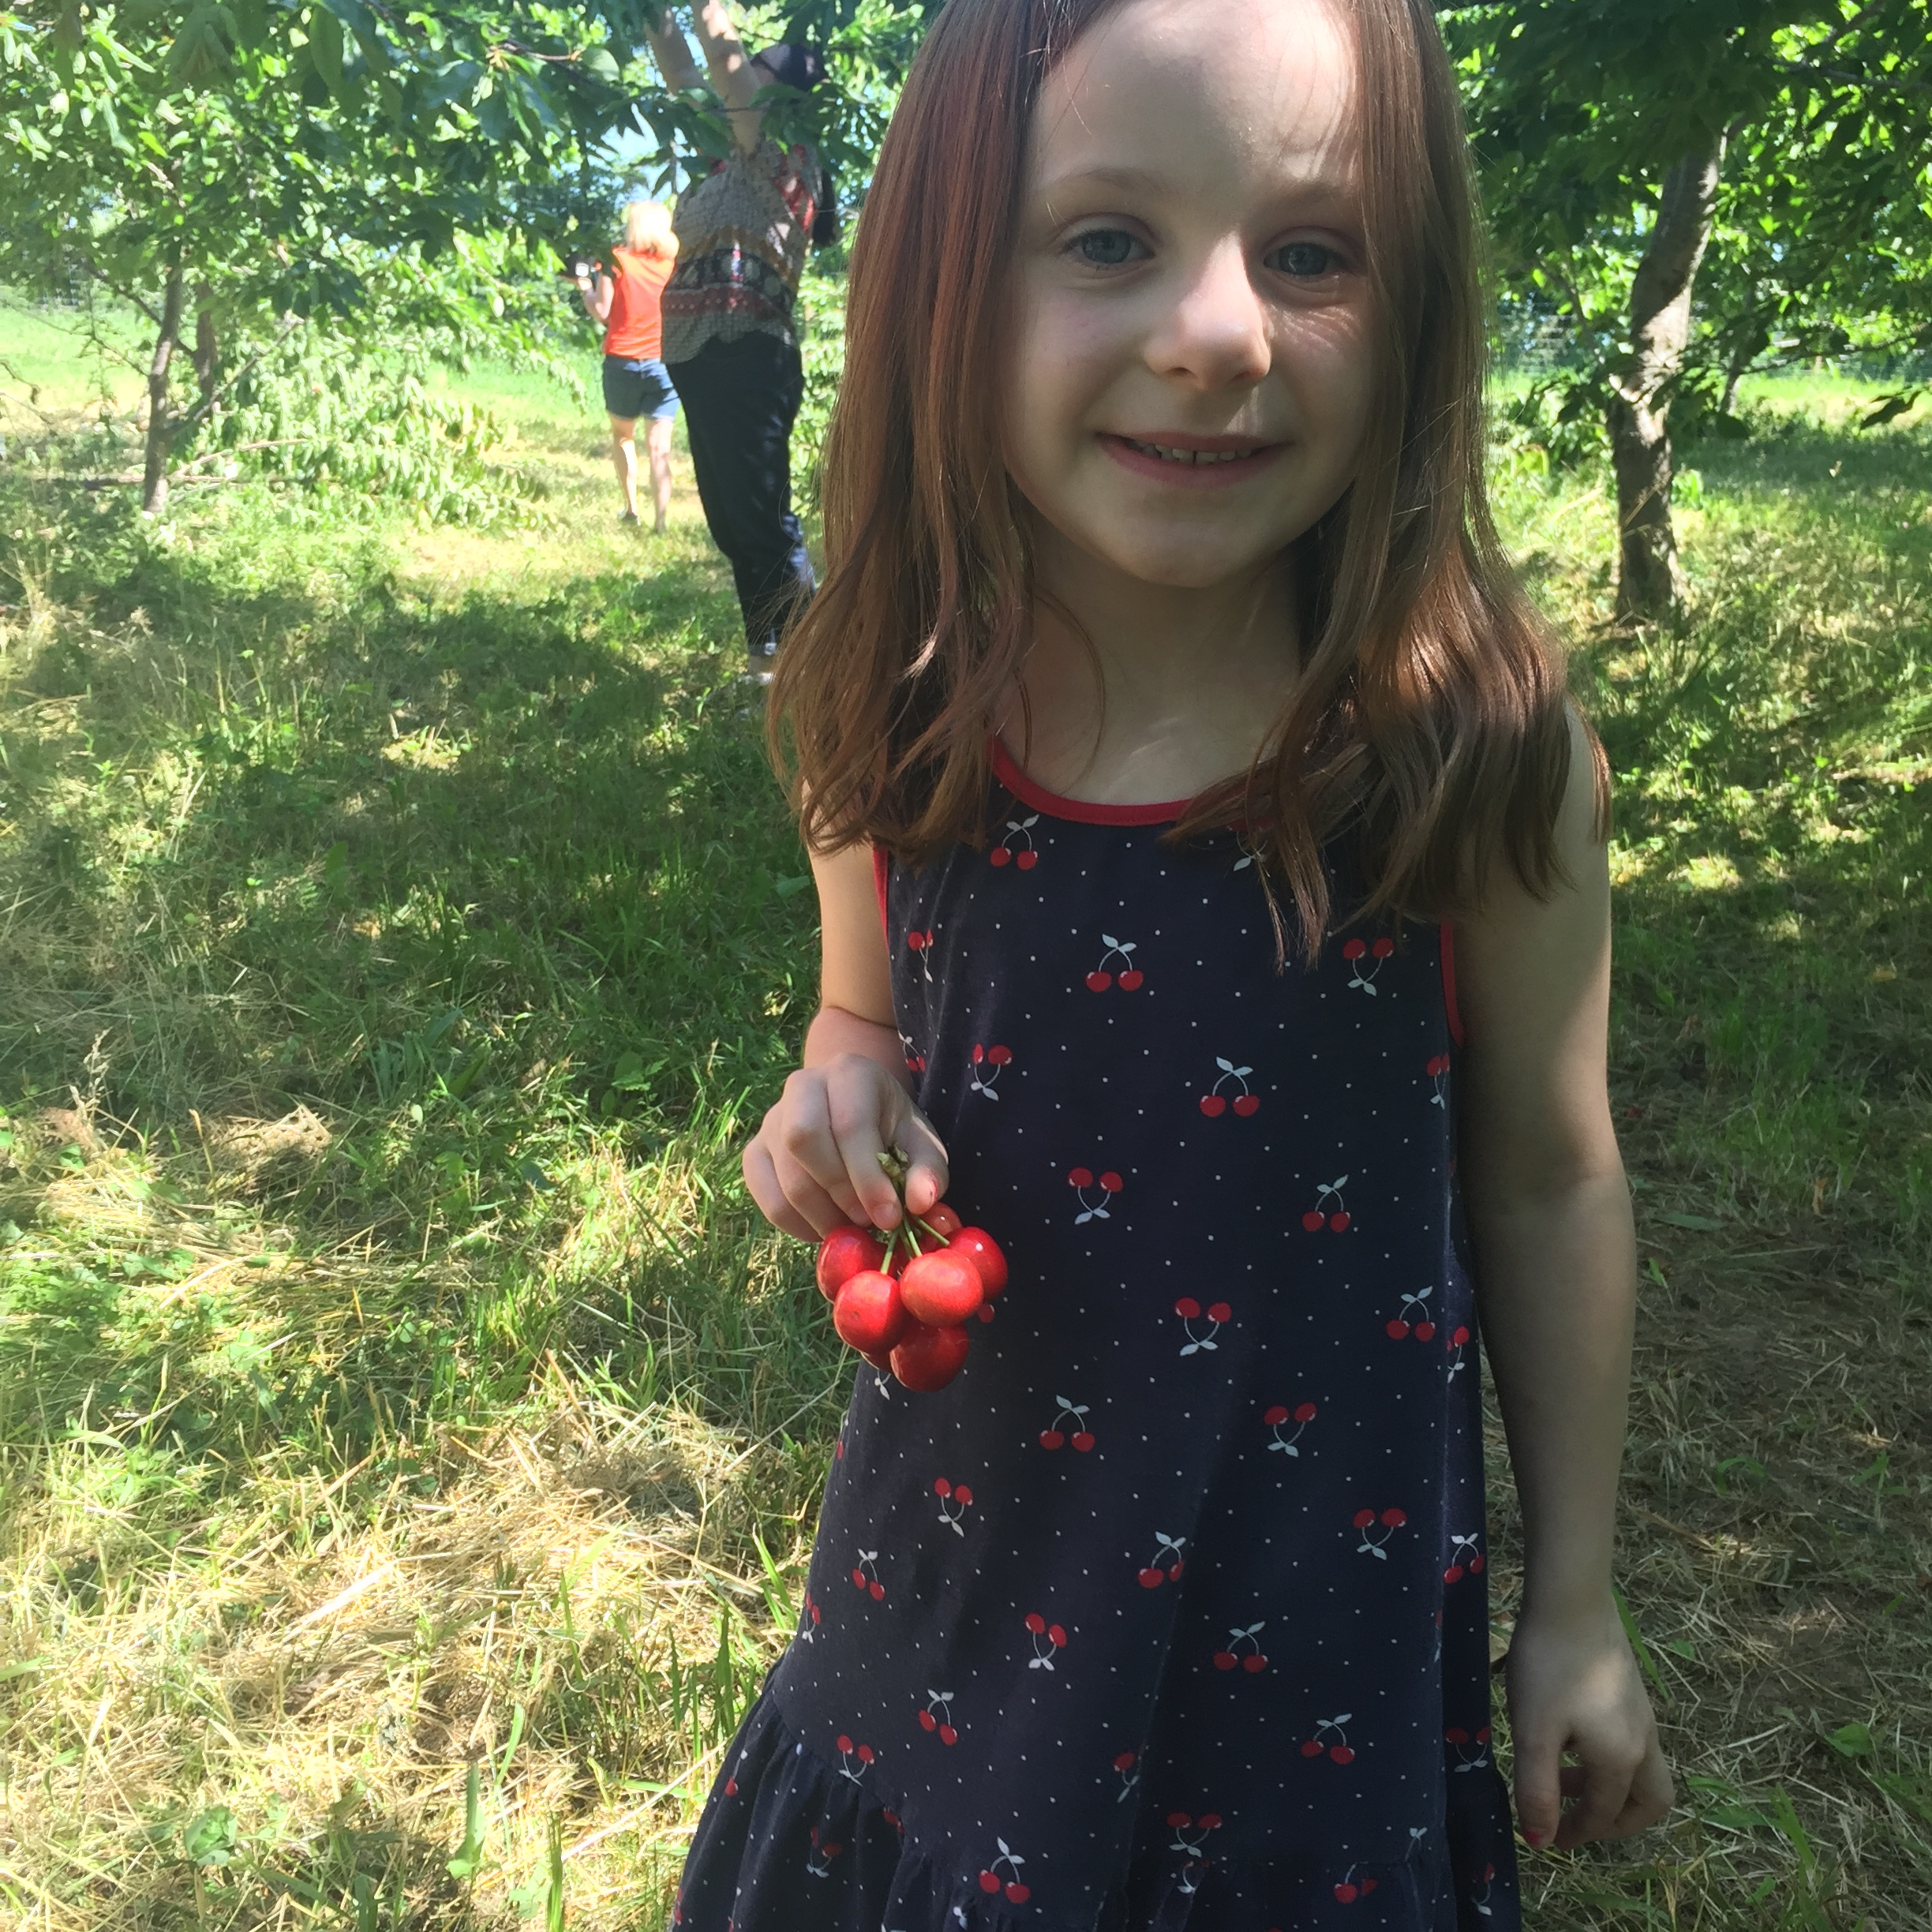 A happy customer with a matching cherry dress